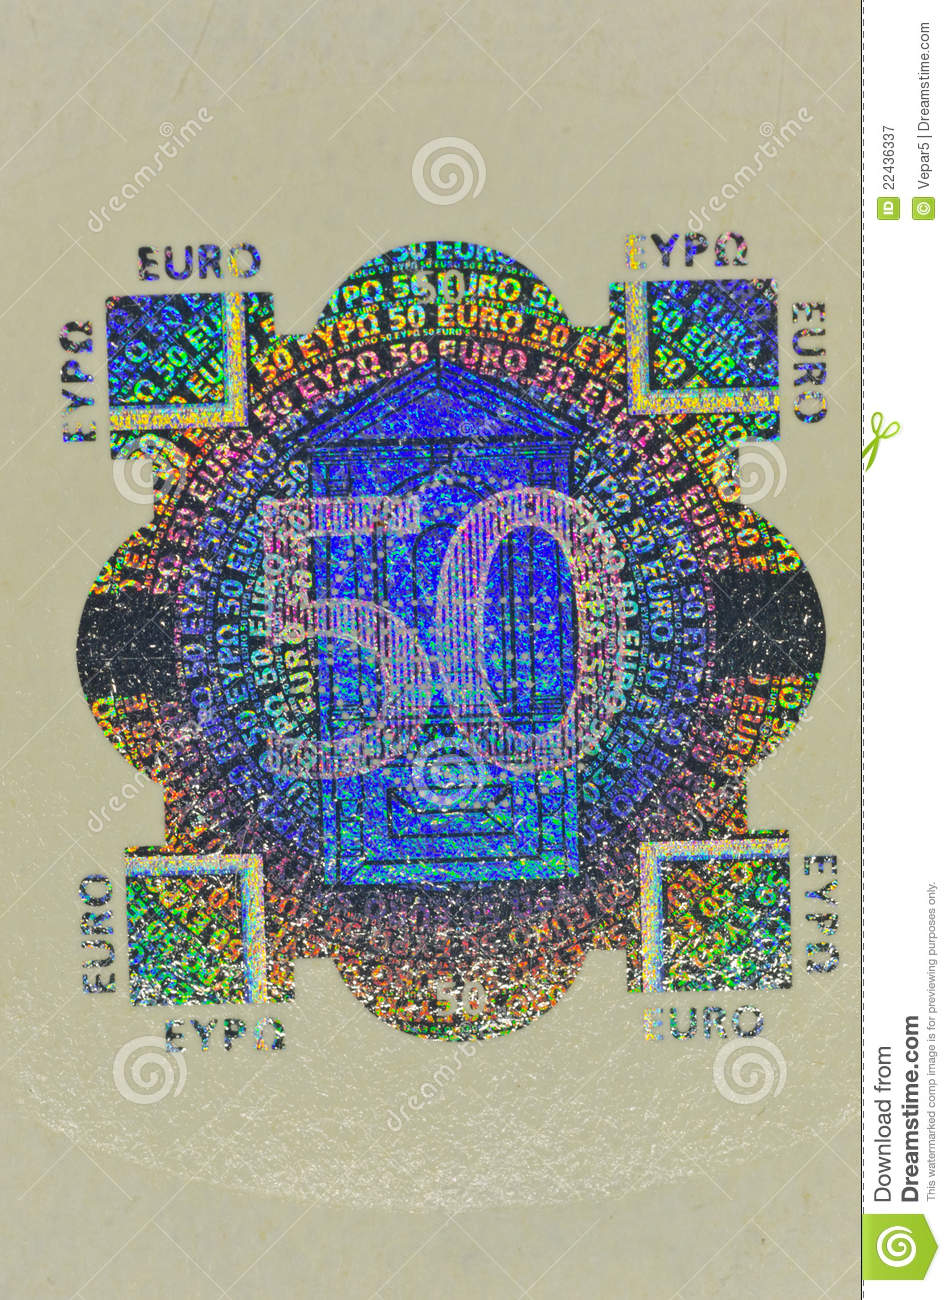 hologram protection on 50 euro banknote royalty free stock